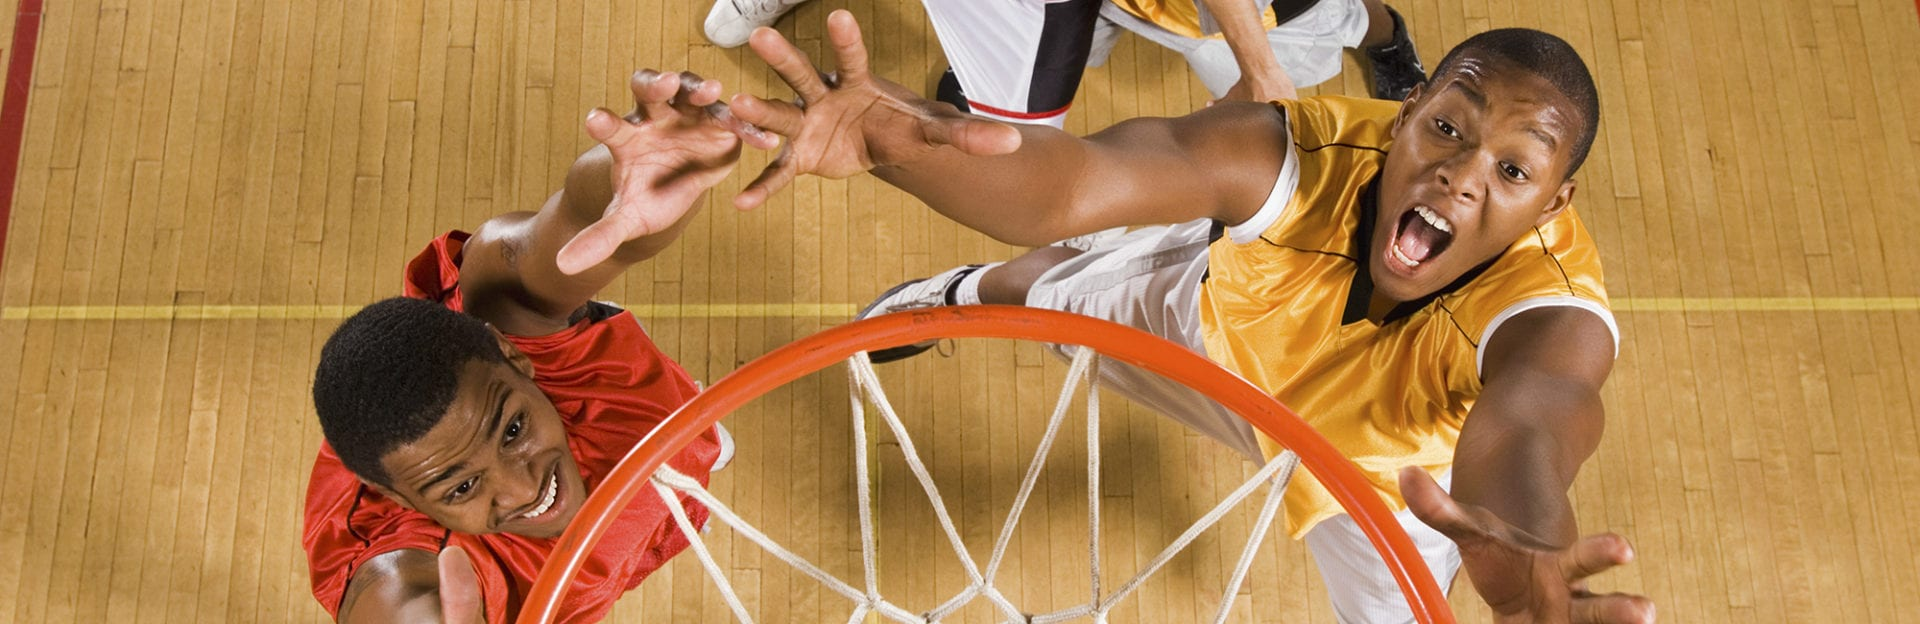 Adult Sports | The Gateway Family YMCA